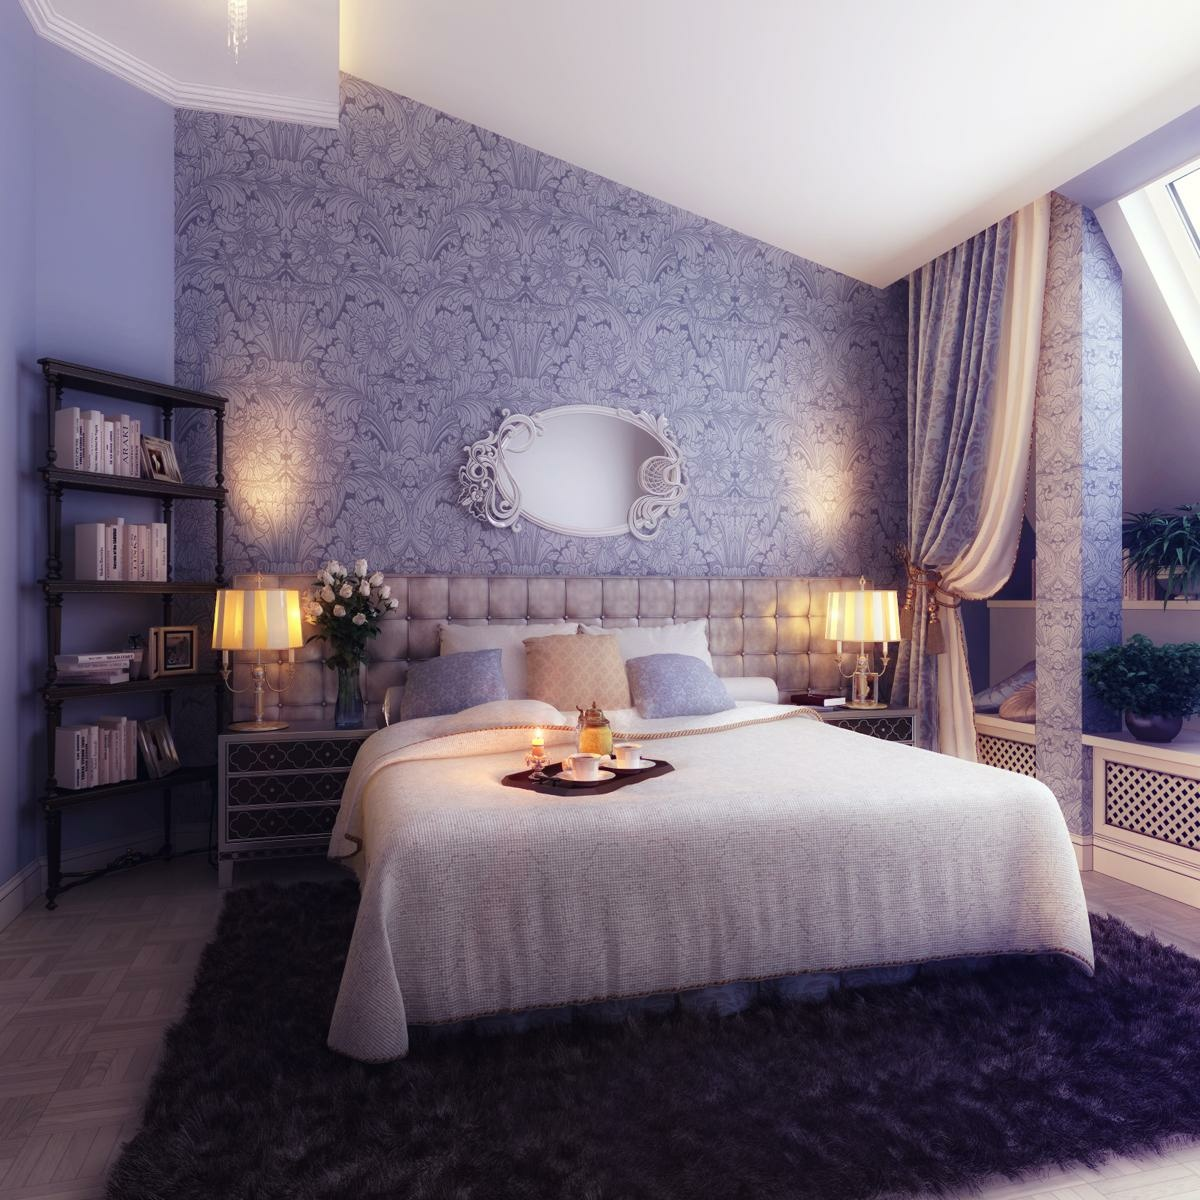 Room Decoration: Bedrooms With Traditional Elegance